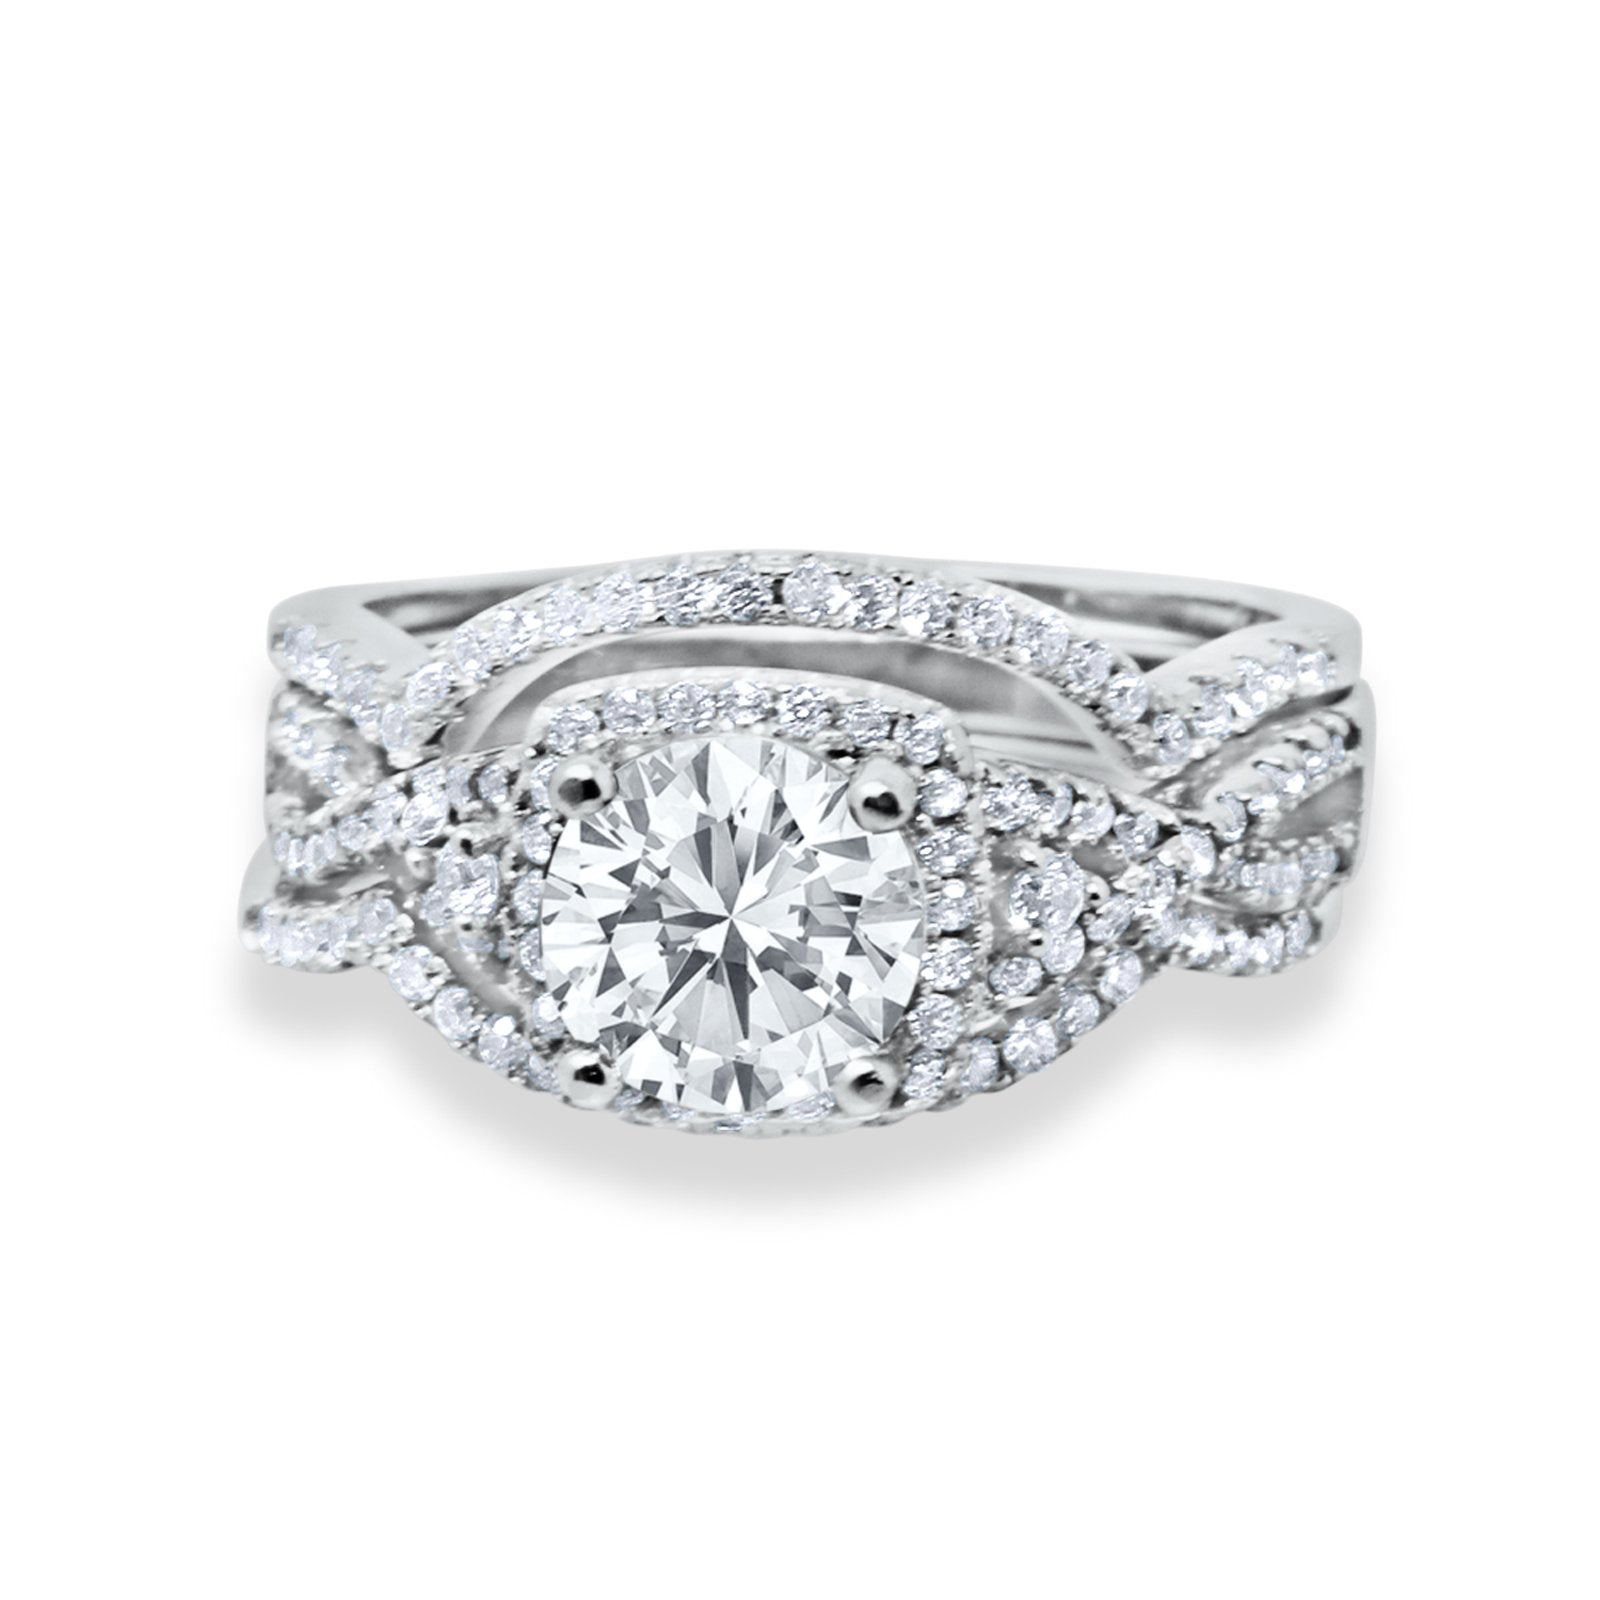 Halo Wedding Trio Piece Ring Simulated Cubic Zirconia 925 Sterling Silver